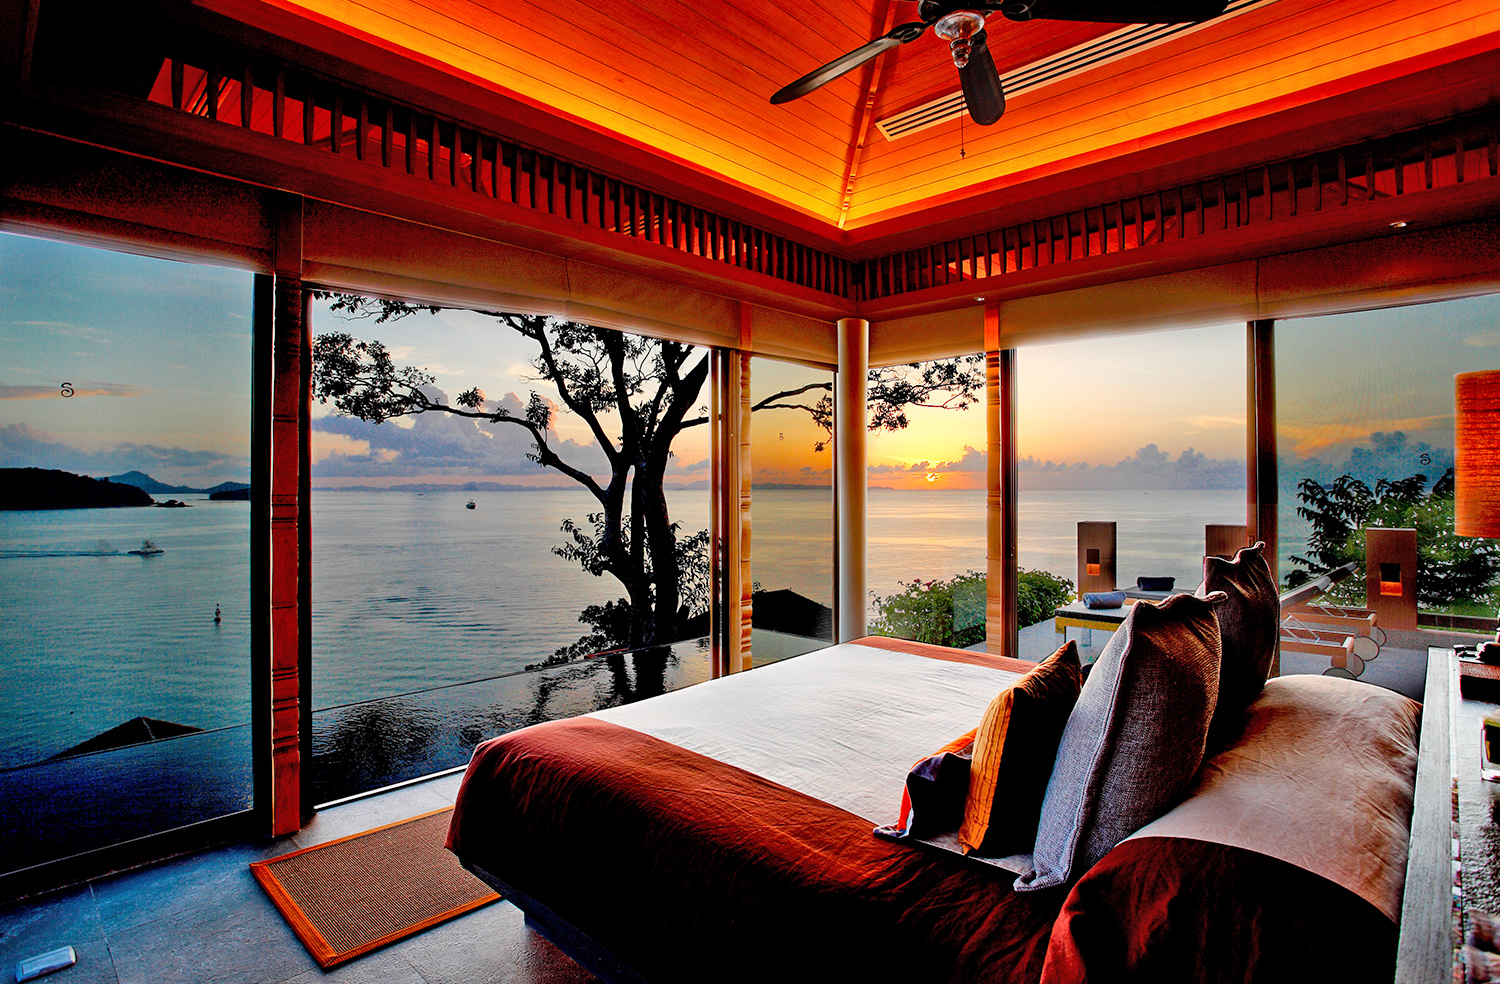 Sri Panwa Phuket Luxury Pool Villa Hotel,